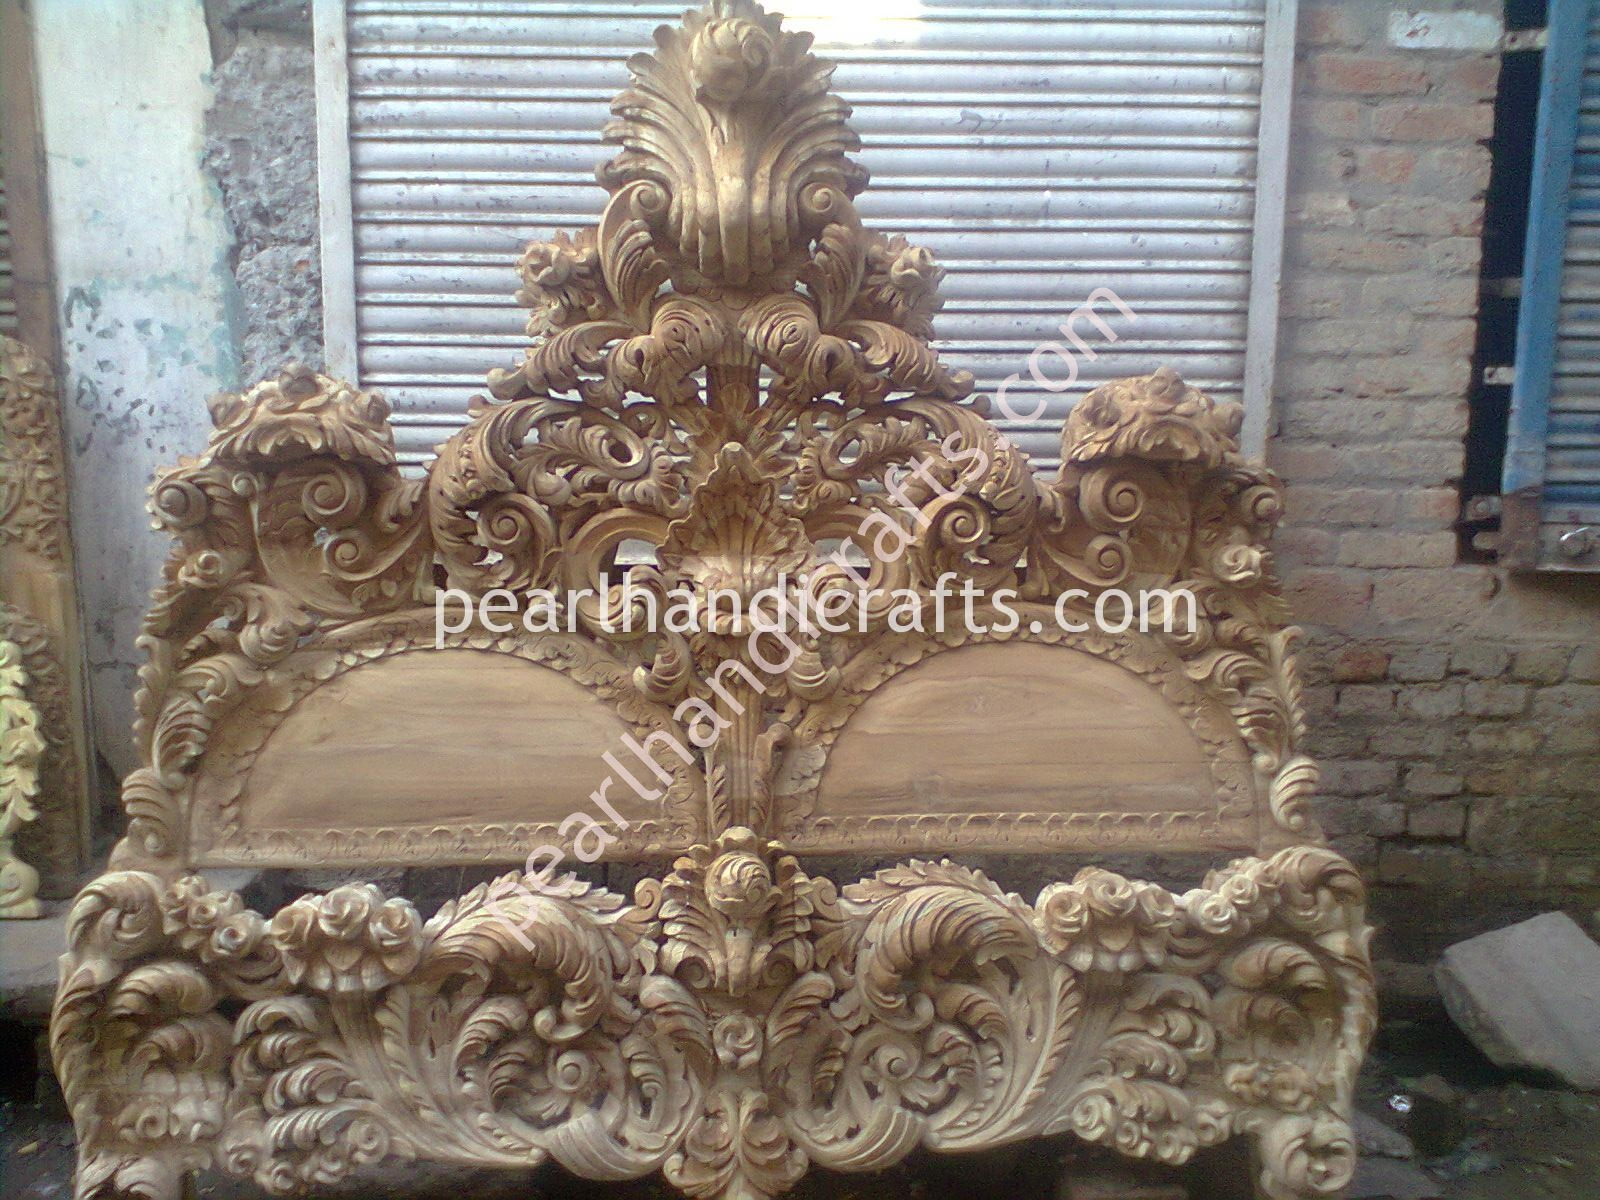 Indian wooden double bed designs double layer bed pearl handicrafts